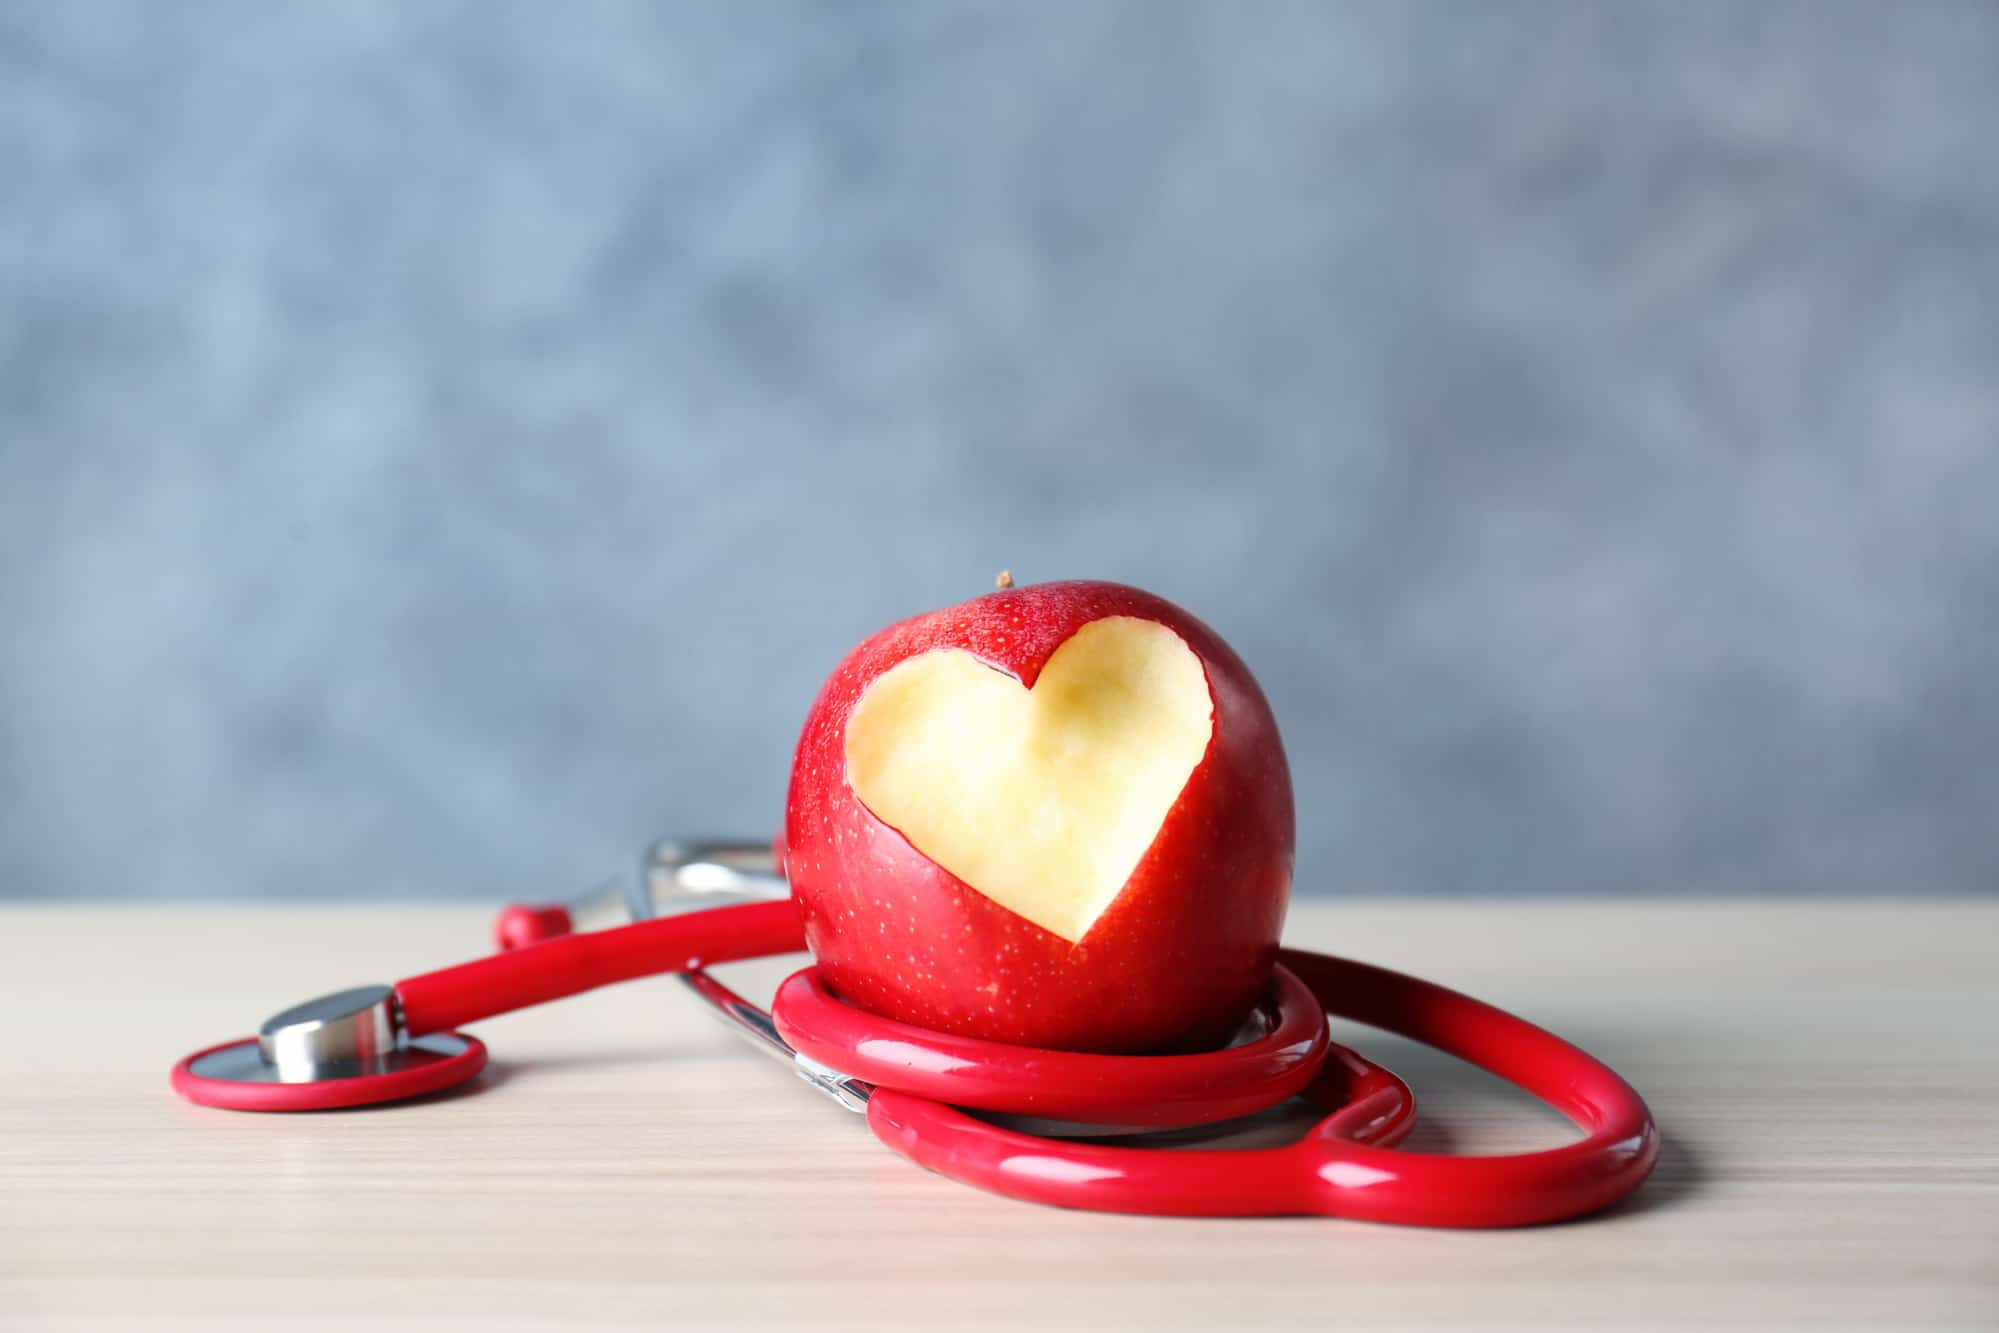 Stethoscope wrapped around a red apple.